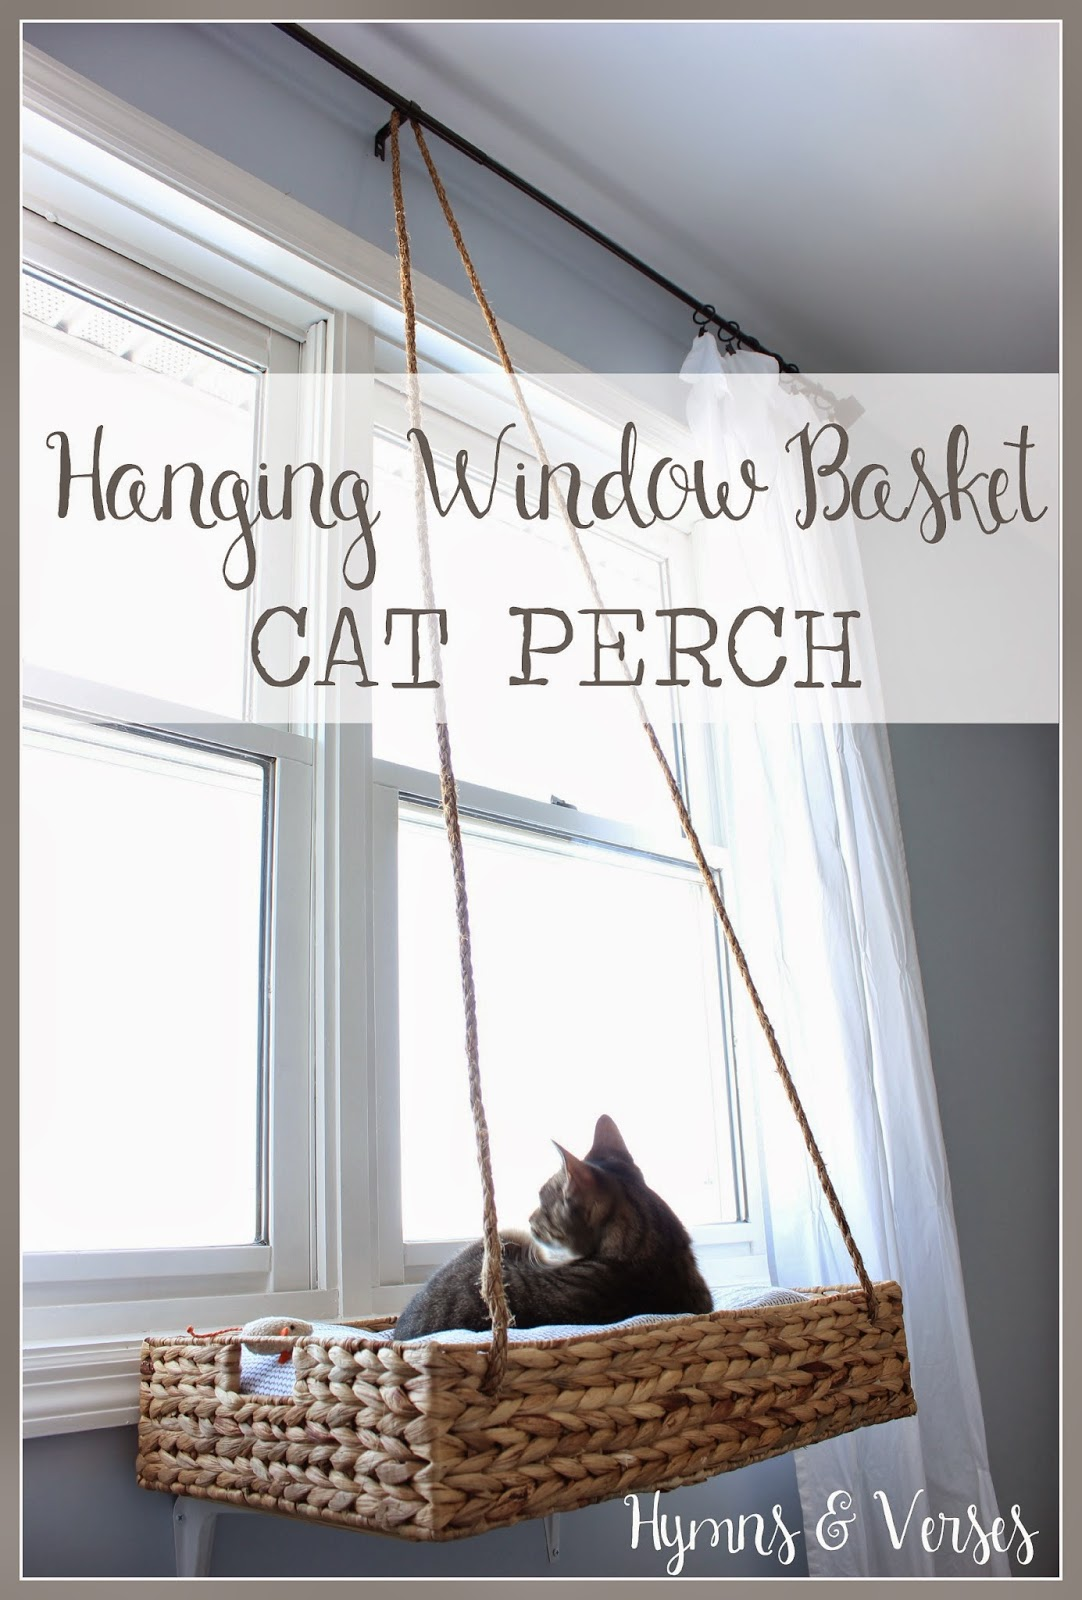 Hymns and verses diy hanging window basket cat perch for How to build a cat perch